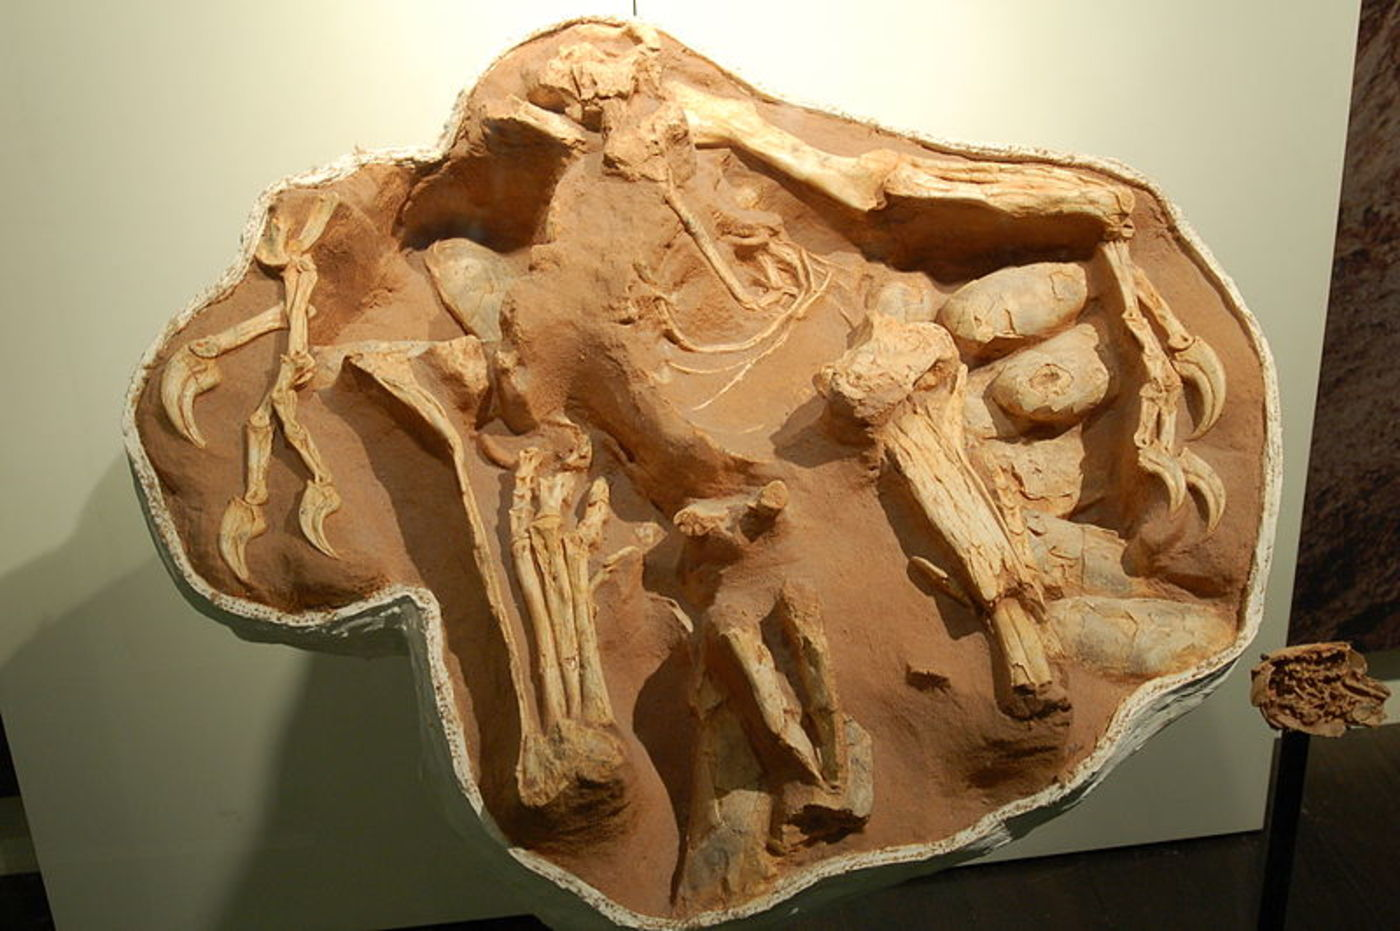 Fossil of bones in dirt, with claws and eggs visible